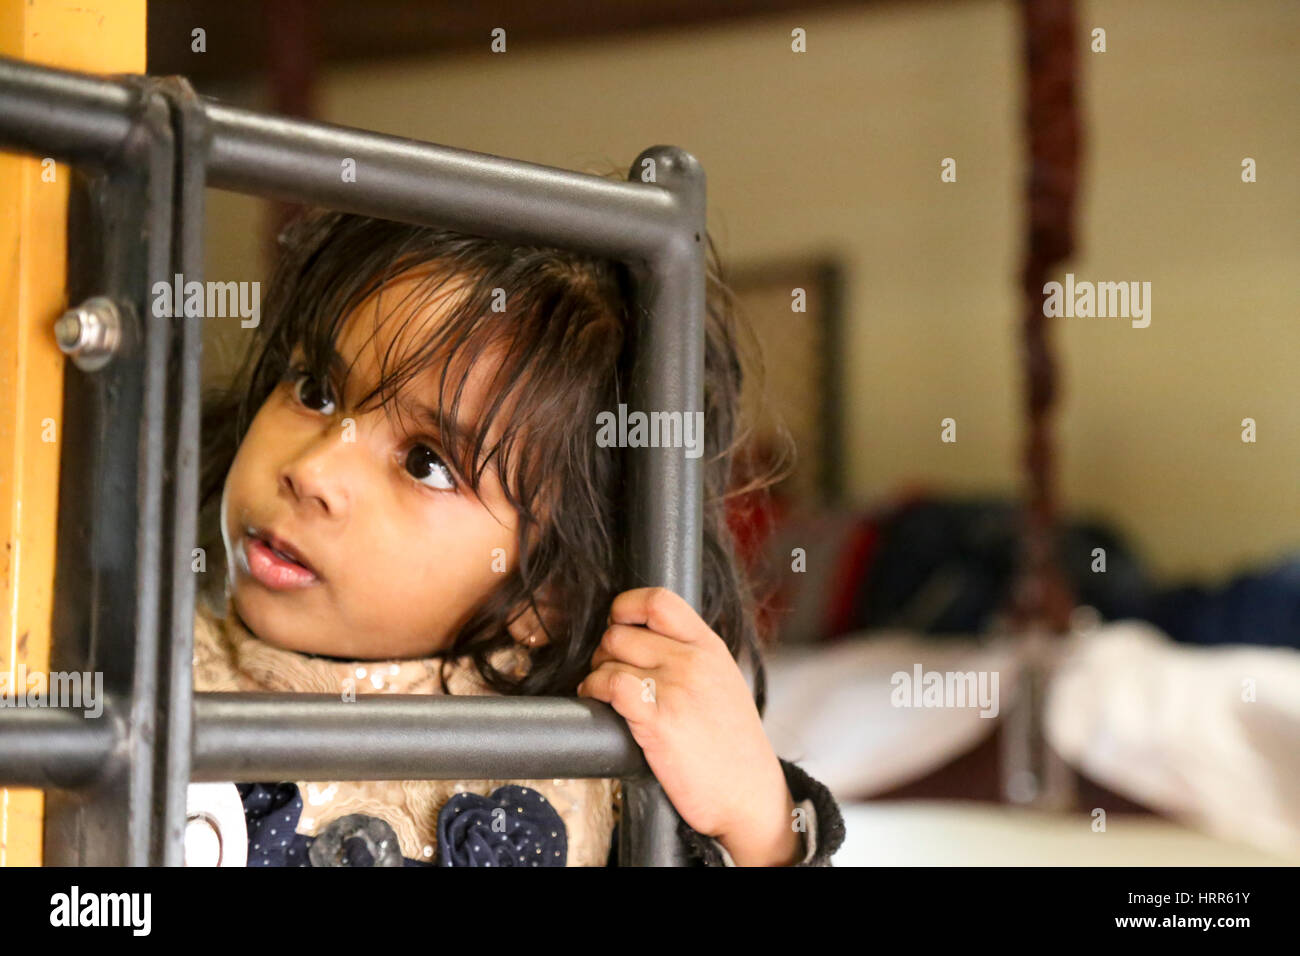 Portrait of an Indian girl on the train, India. - Stock Image